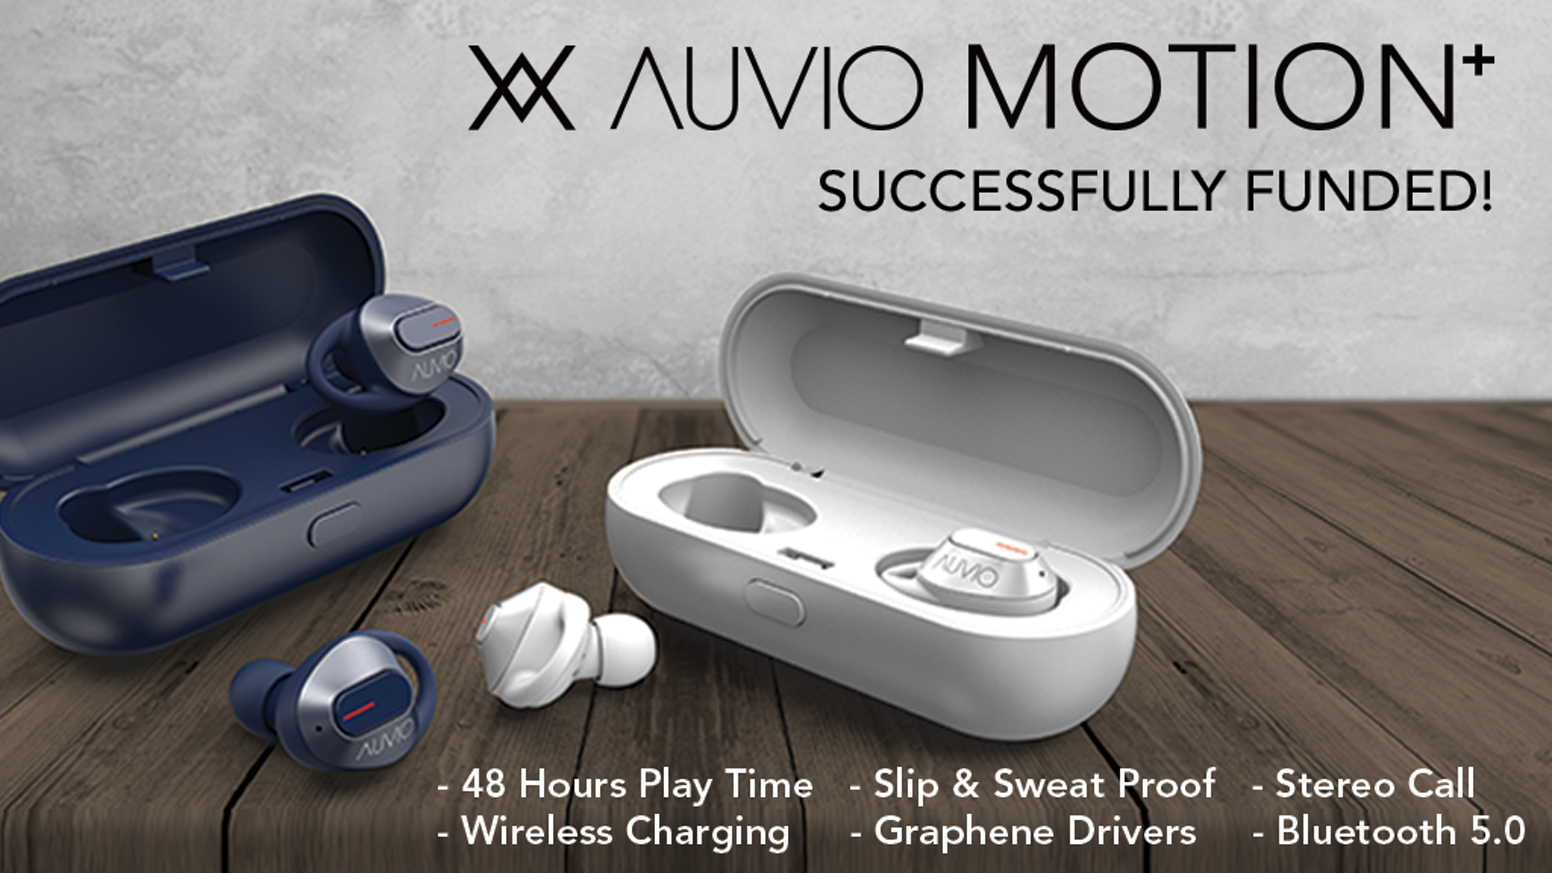 The only true wireless plus earbuds with 48 hrs playtime, slip & sweat proof, wireless charging, Bluetooth 5.0  and amazing sound